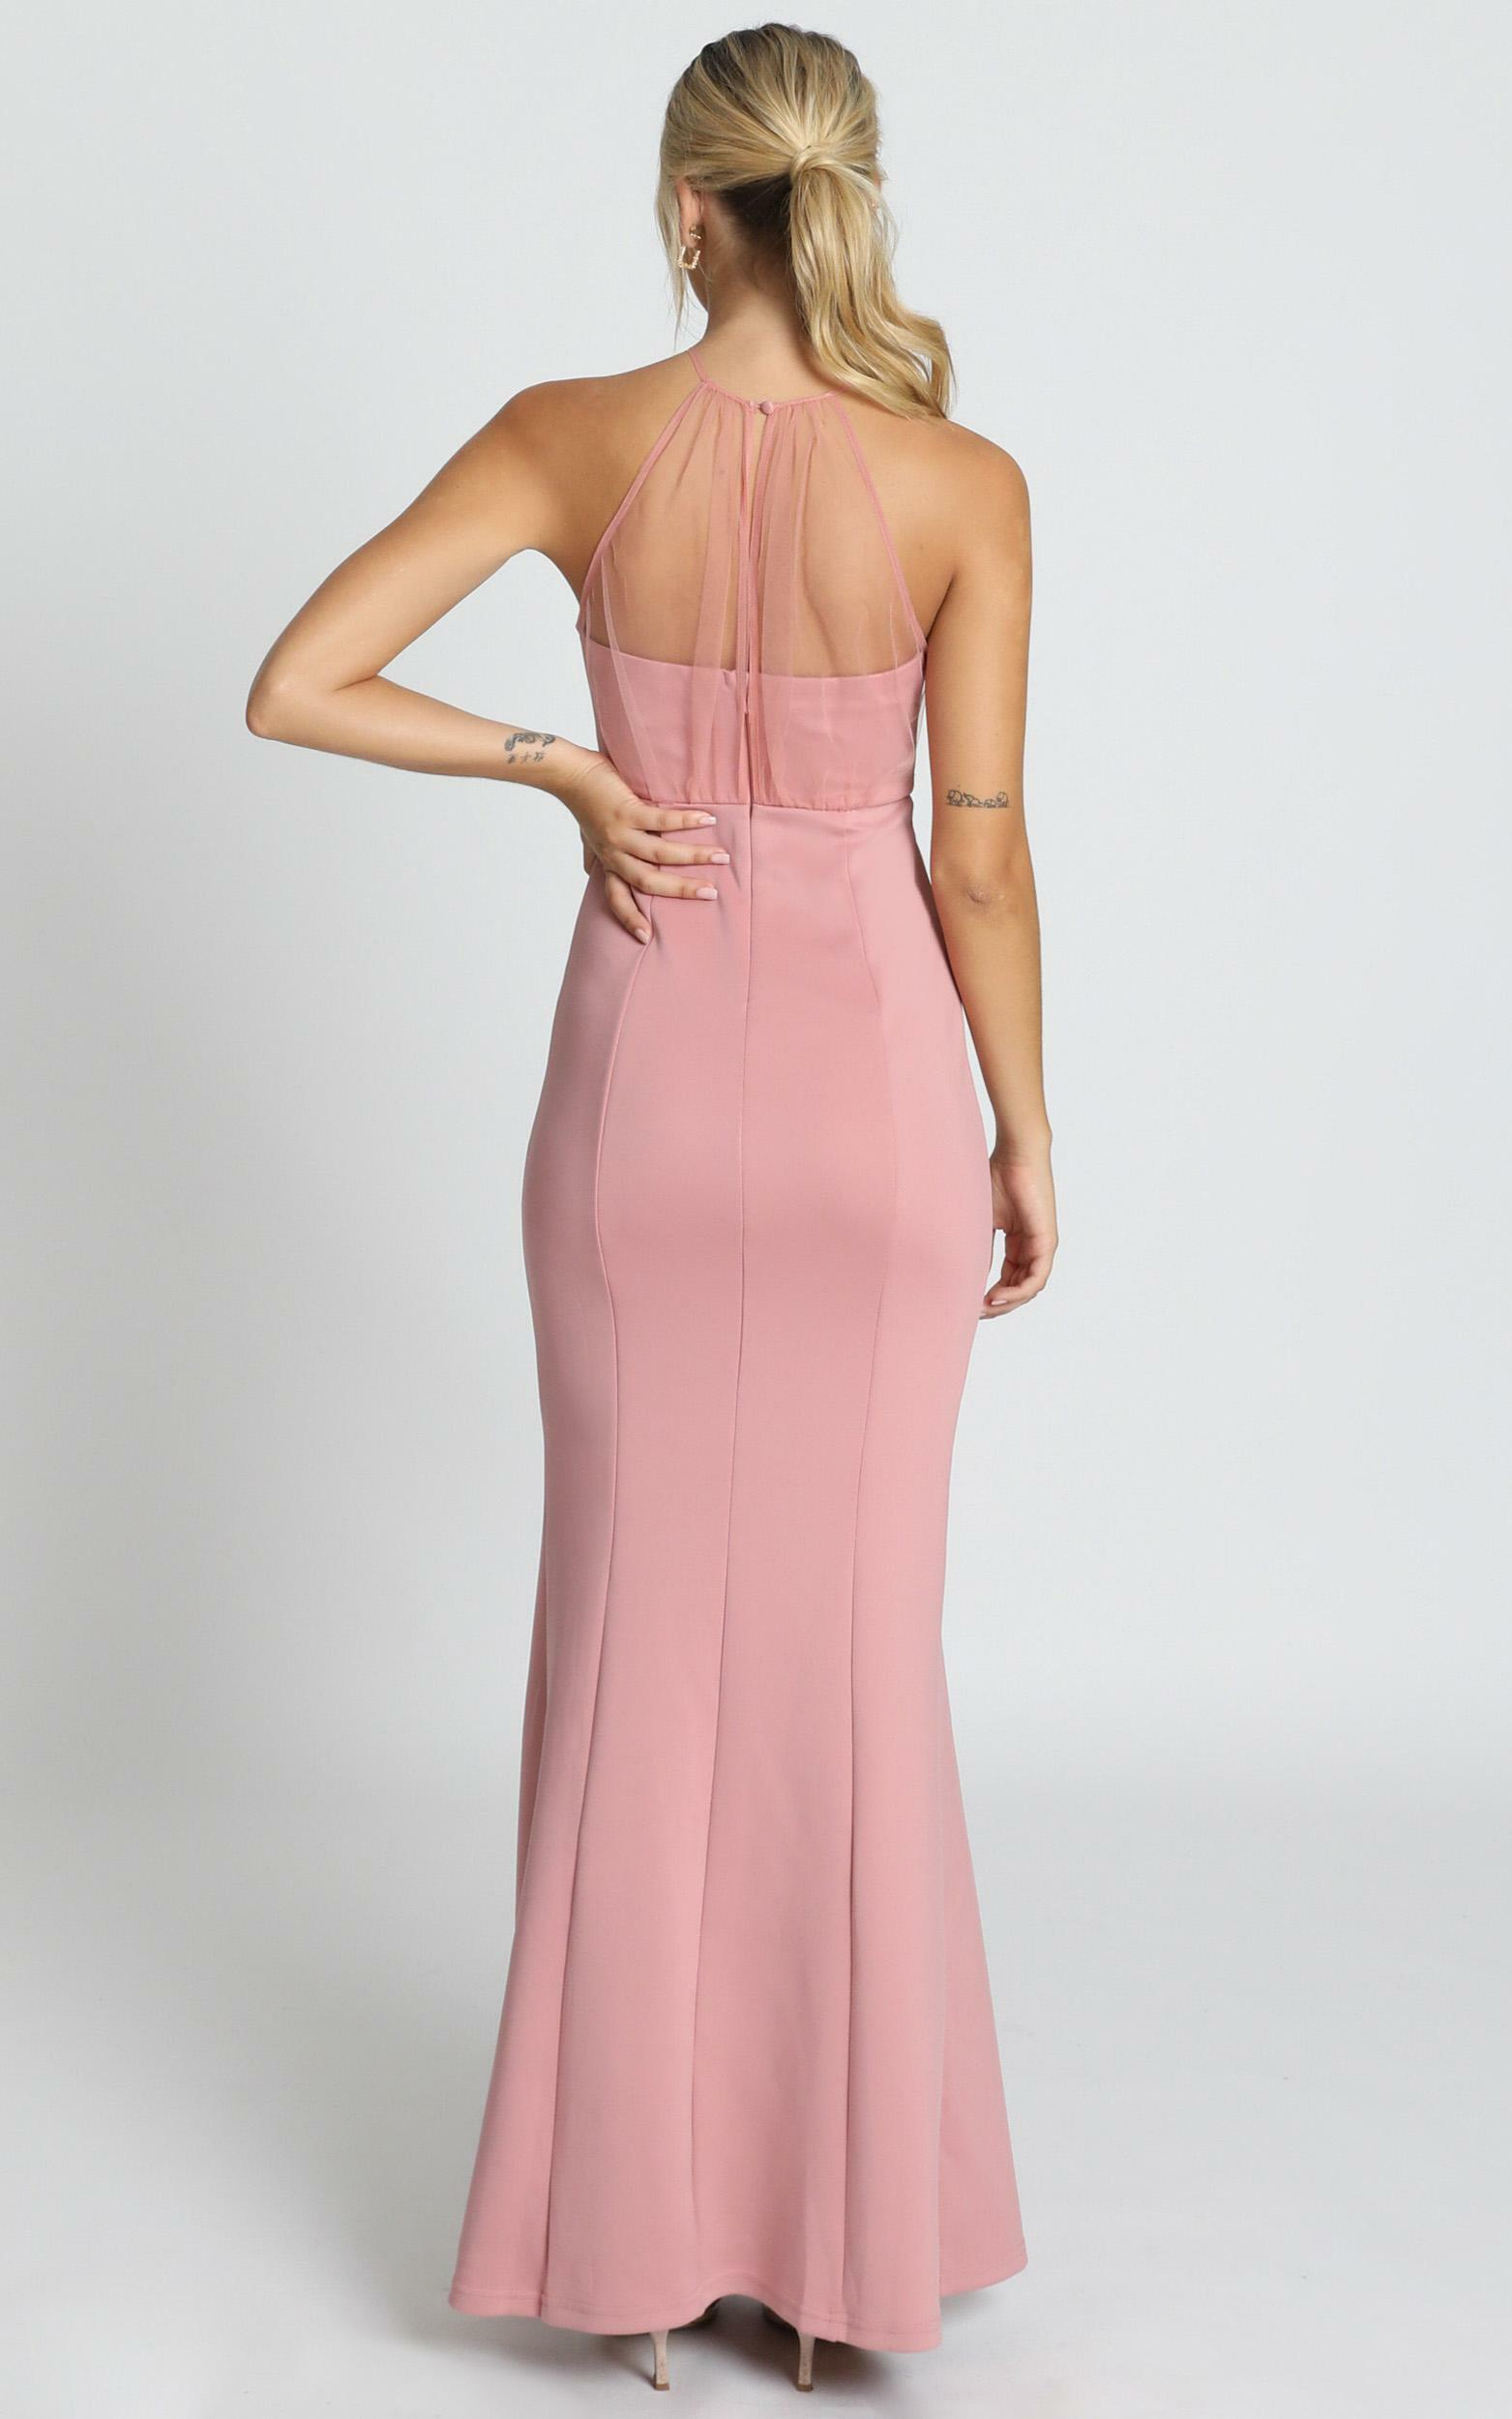 Still Love You Dress in dusty rose - 14 (XL), Pink, hi-res image number null